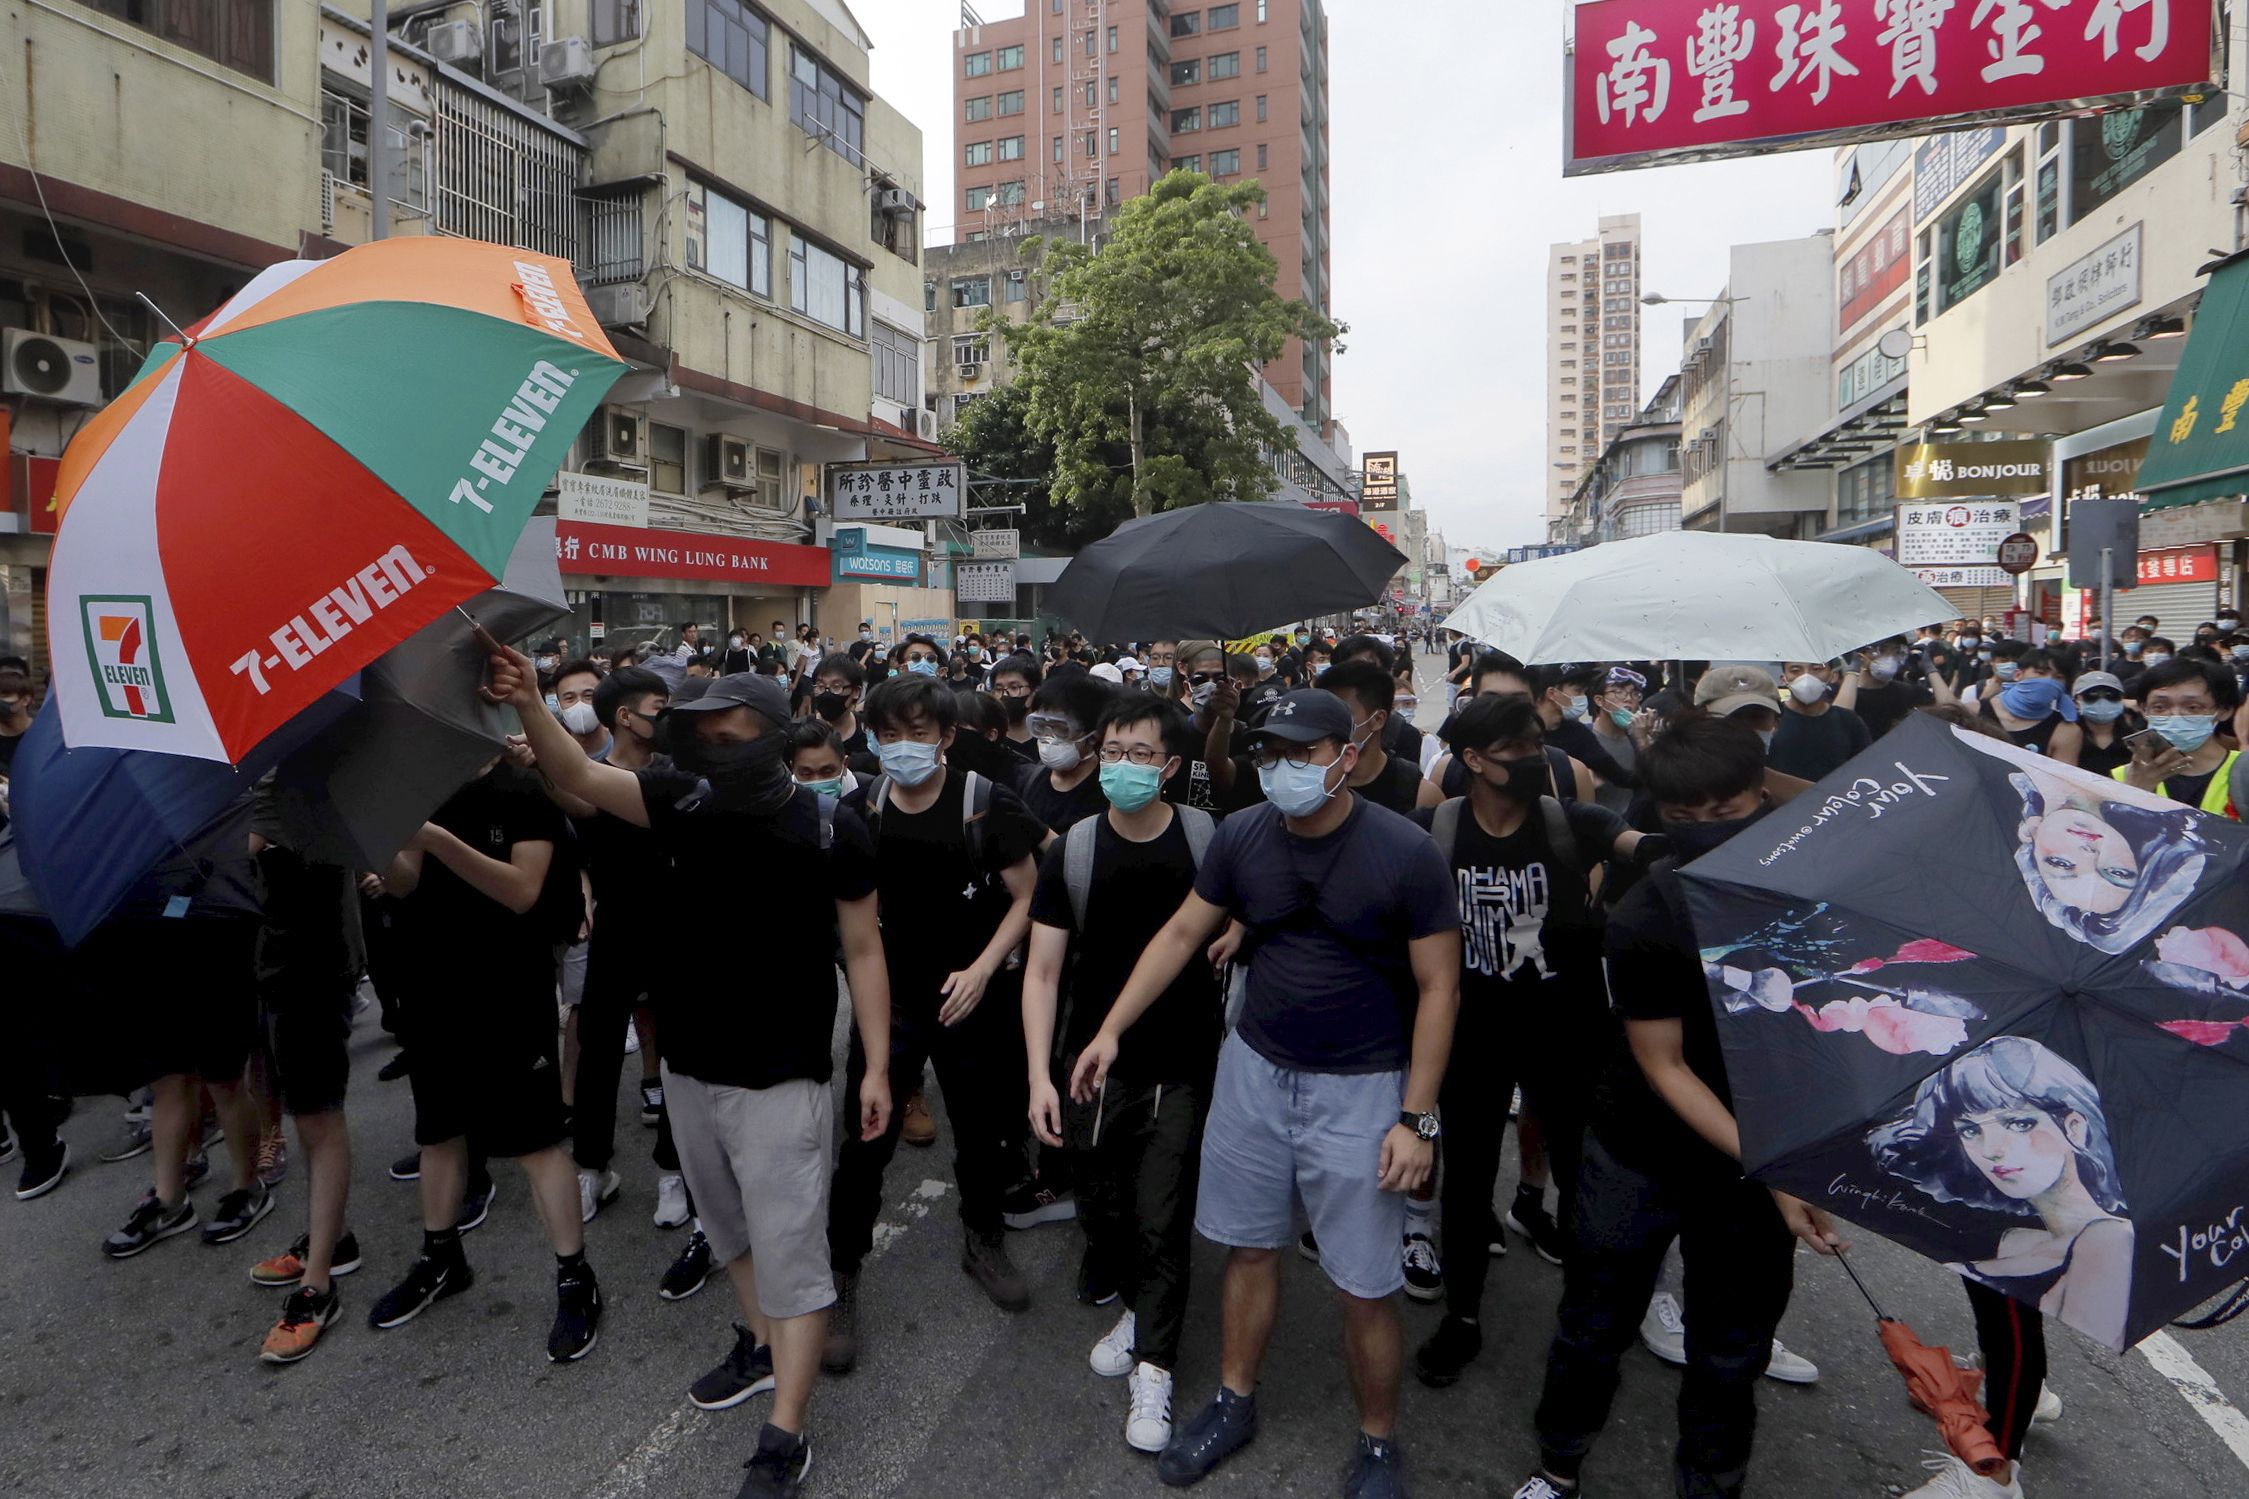 Violence escalates as HK rioters attack police